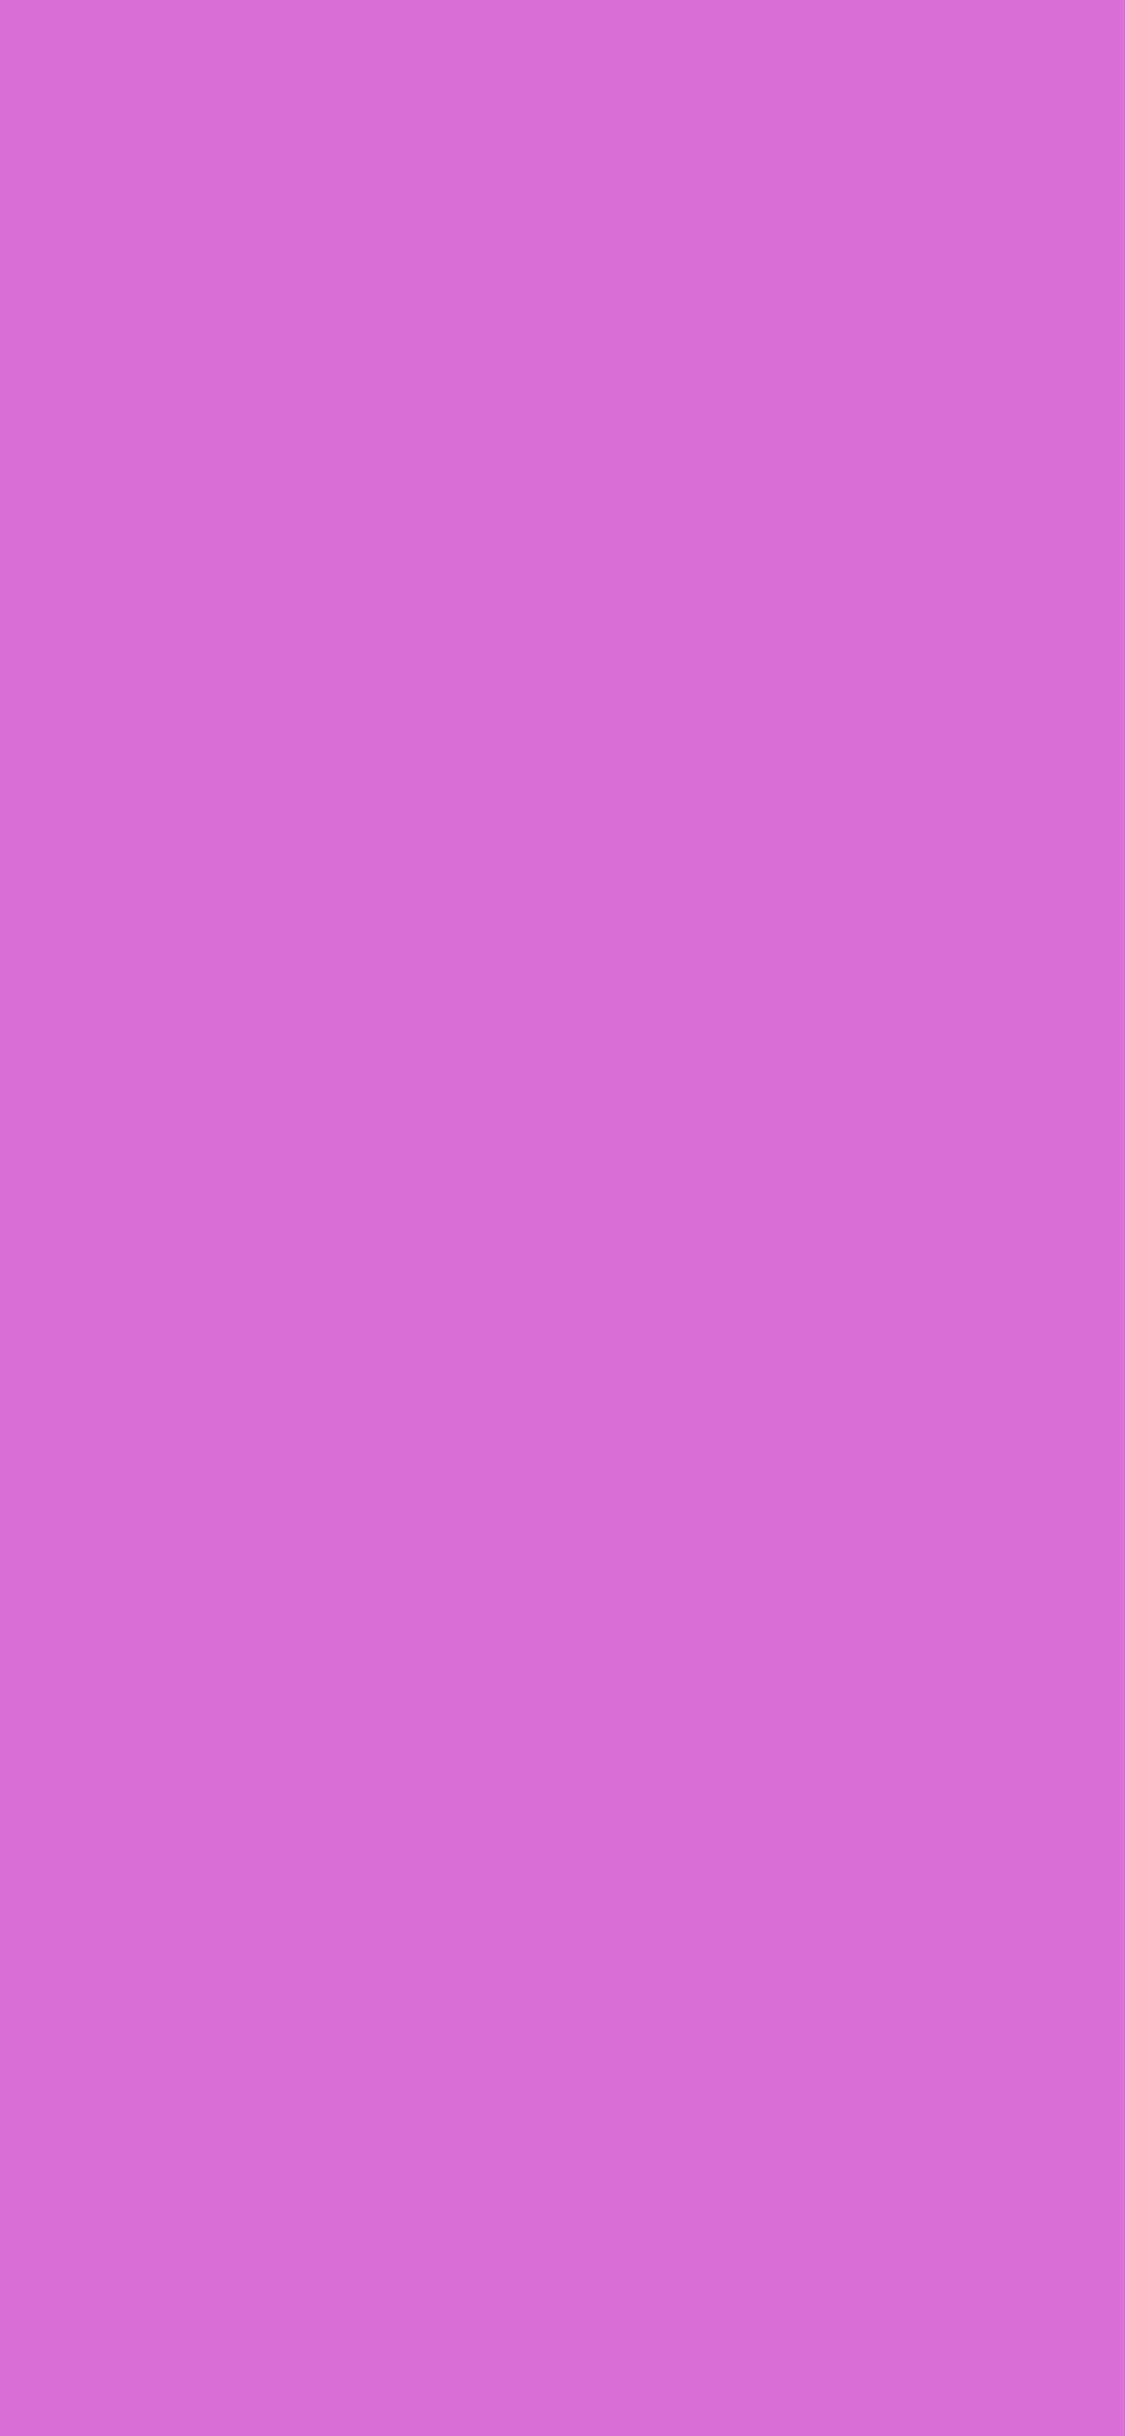 1125x2436 Orchid Solid Color Background